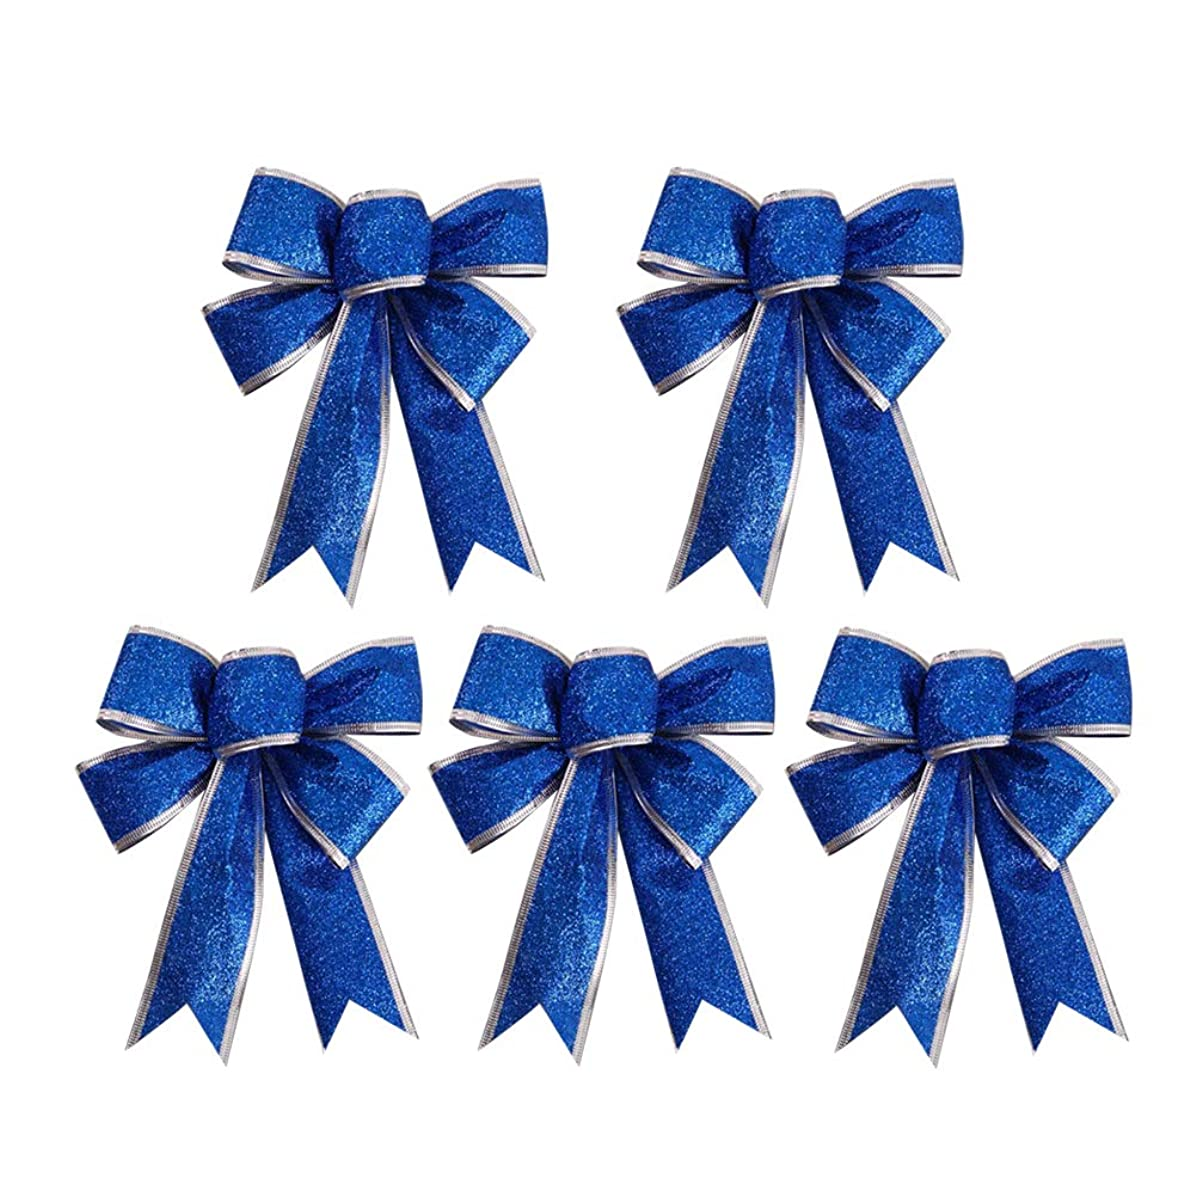 SUPVOX 5pcs/Pack Large Christmas Bow Glitter Glittering FabricGold Gift Ribbon Tree Decorations Presents Kids (Blue)